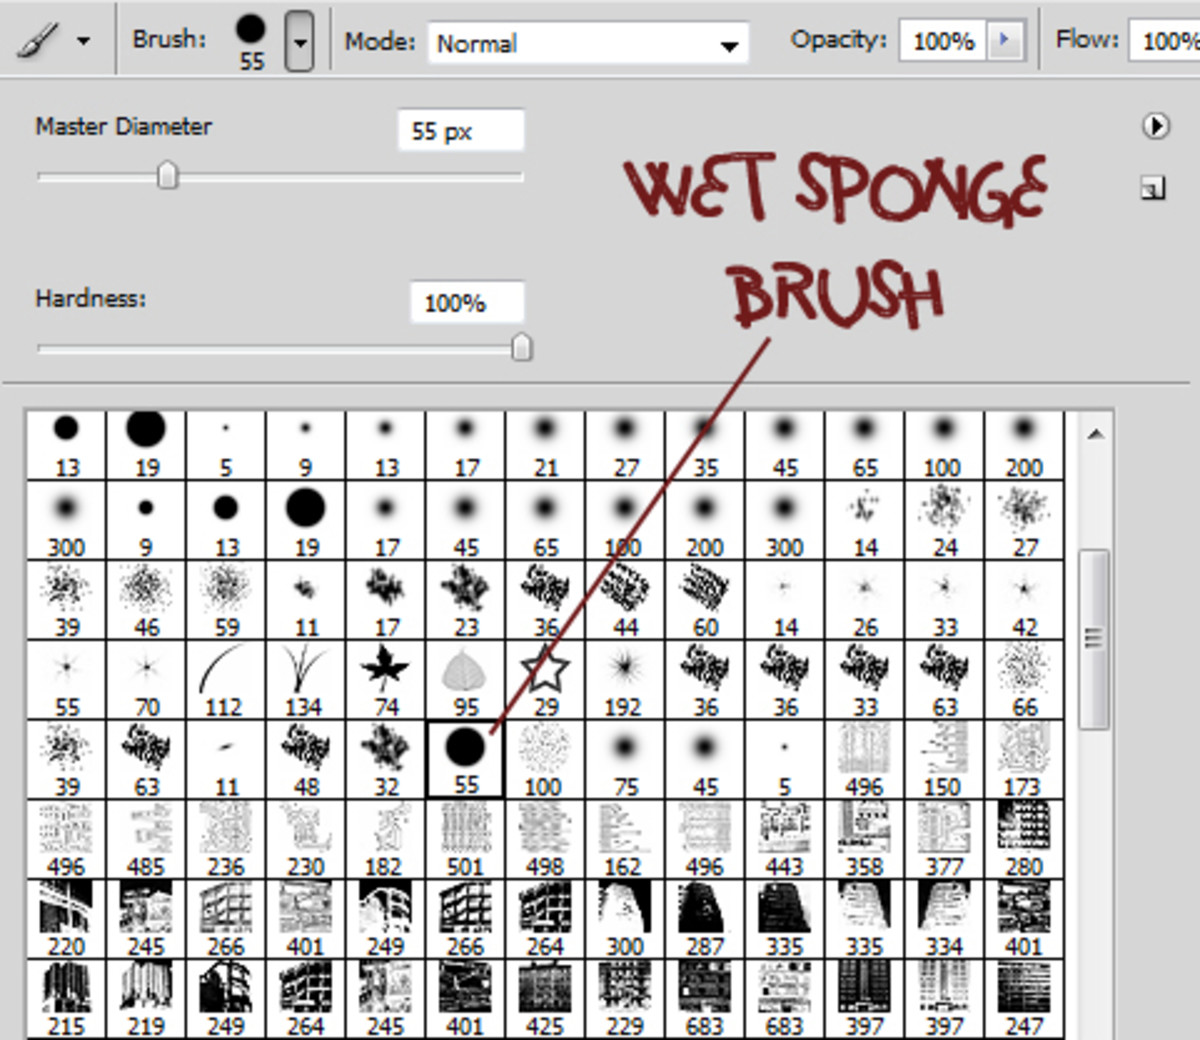 The Wet Sponge Brush is the one with a number 55 below the circle.